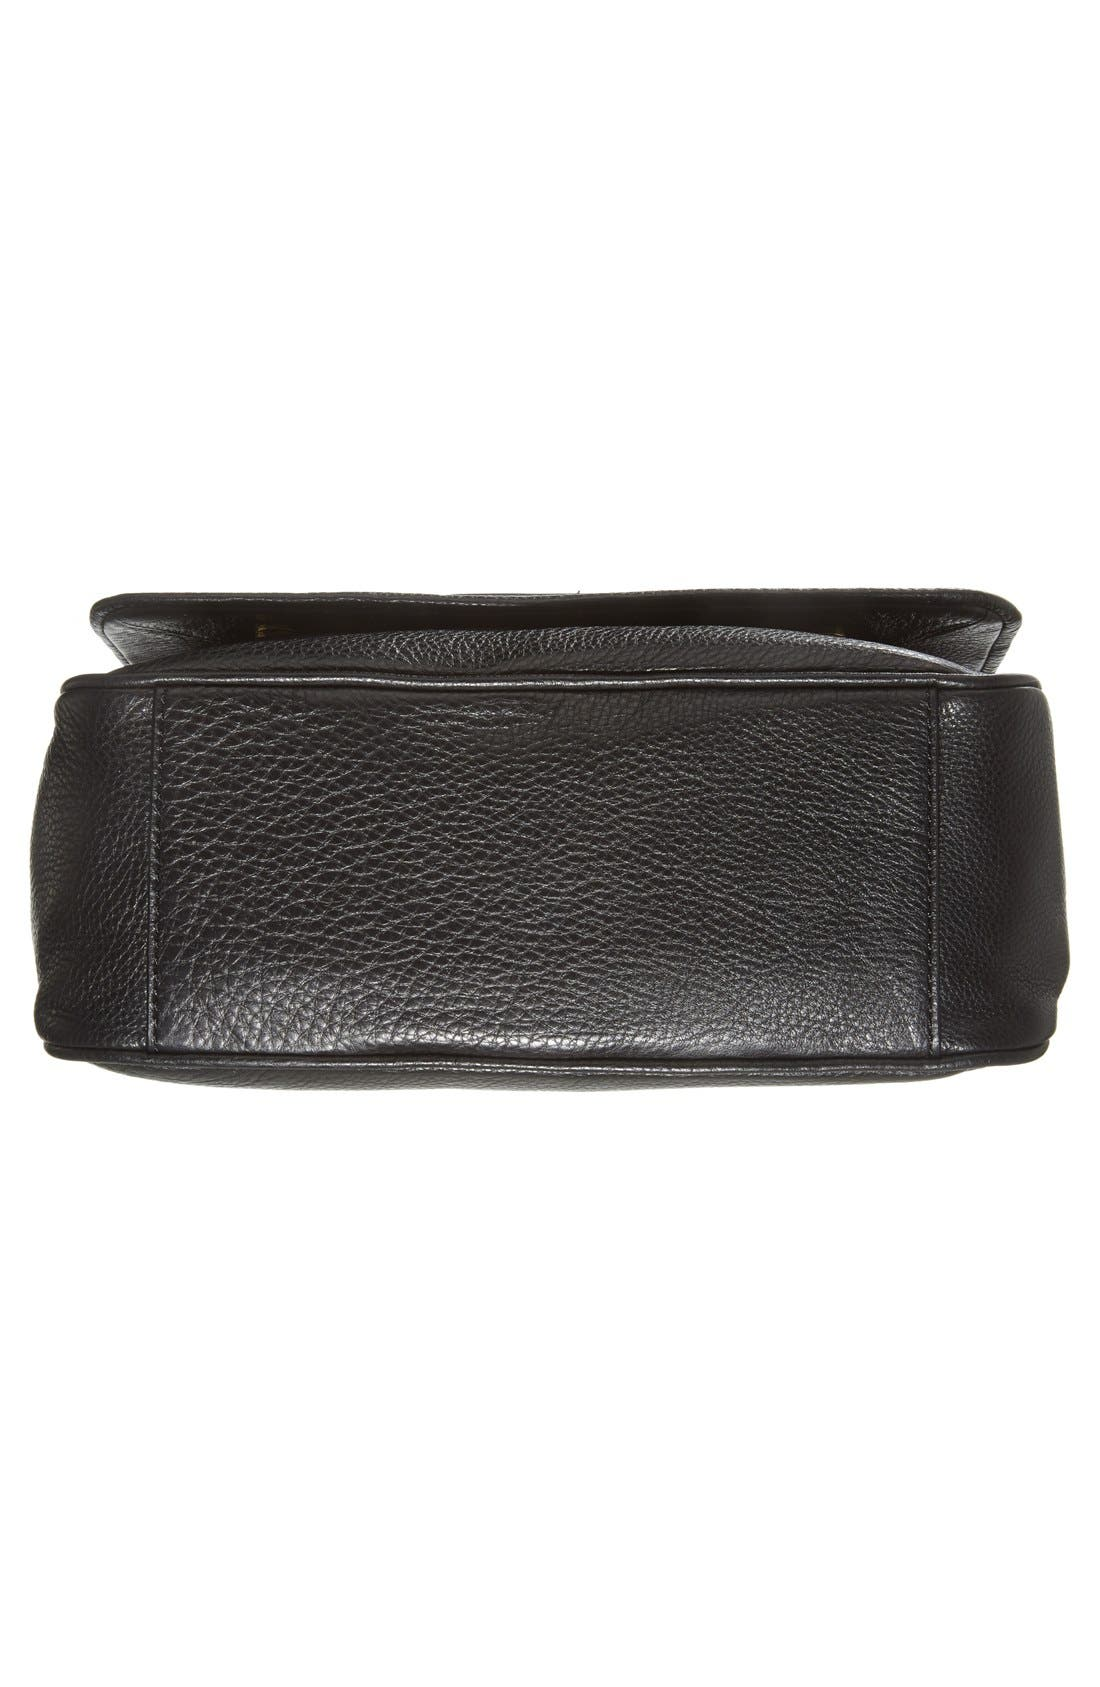 MARC BY MARC JACOBS 'Small Too Hot To Handle' Leather Tote,                             Alternate thumbnail 6, color,                             Black